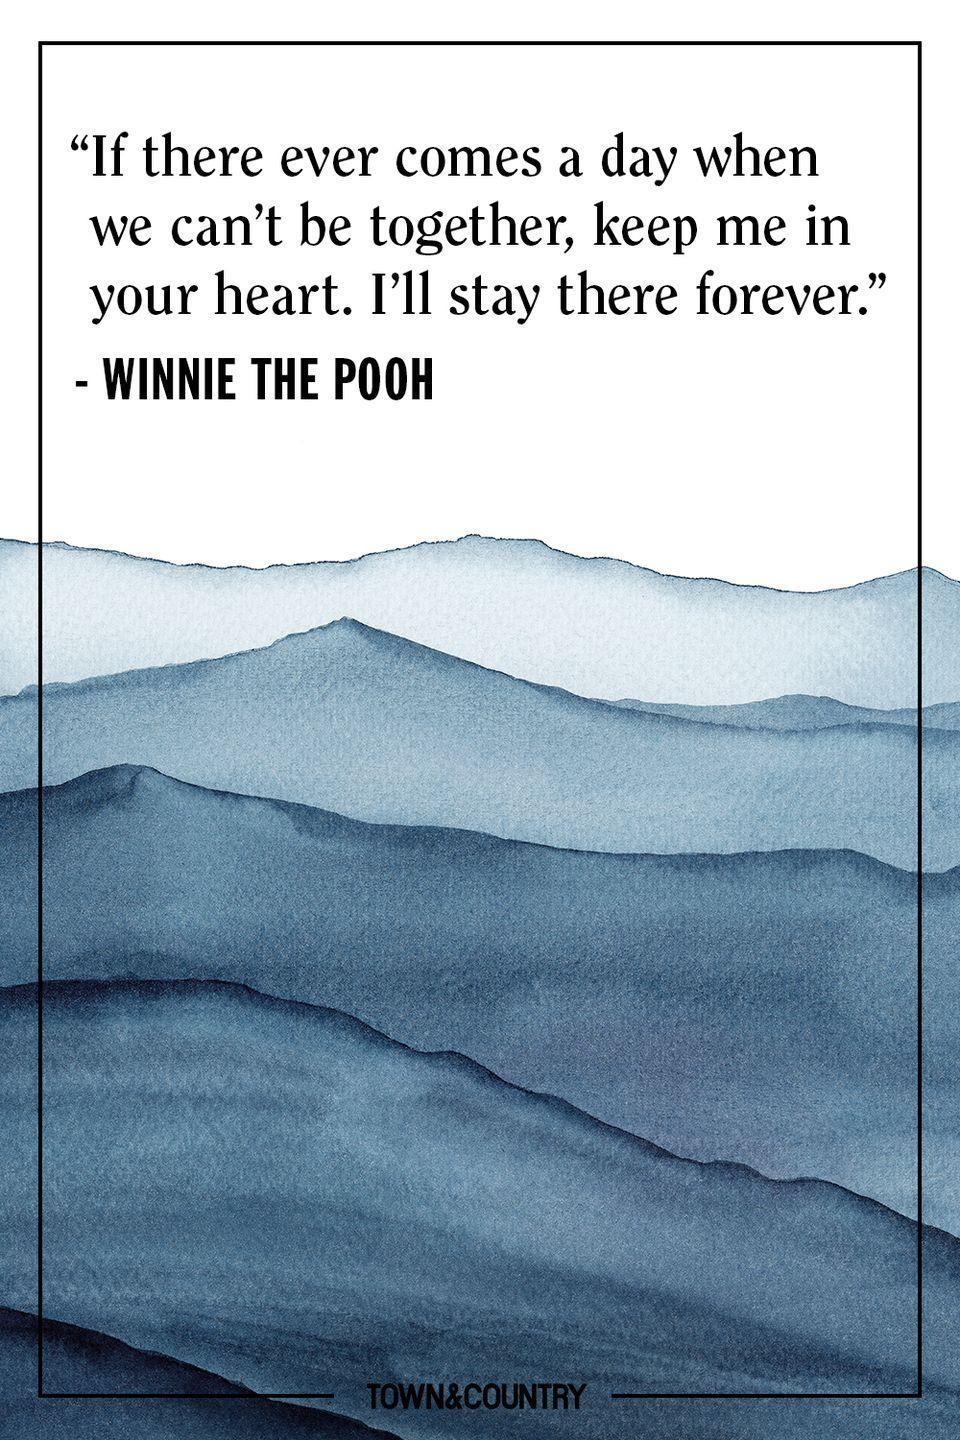 """<p>""""If there ever comes a day when we can't be together, keep me in your heart. I'll stay there forever."""" </p><p>– Winnie the Pooh</p>"""